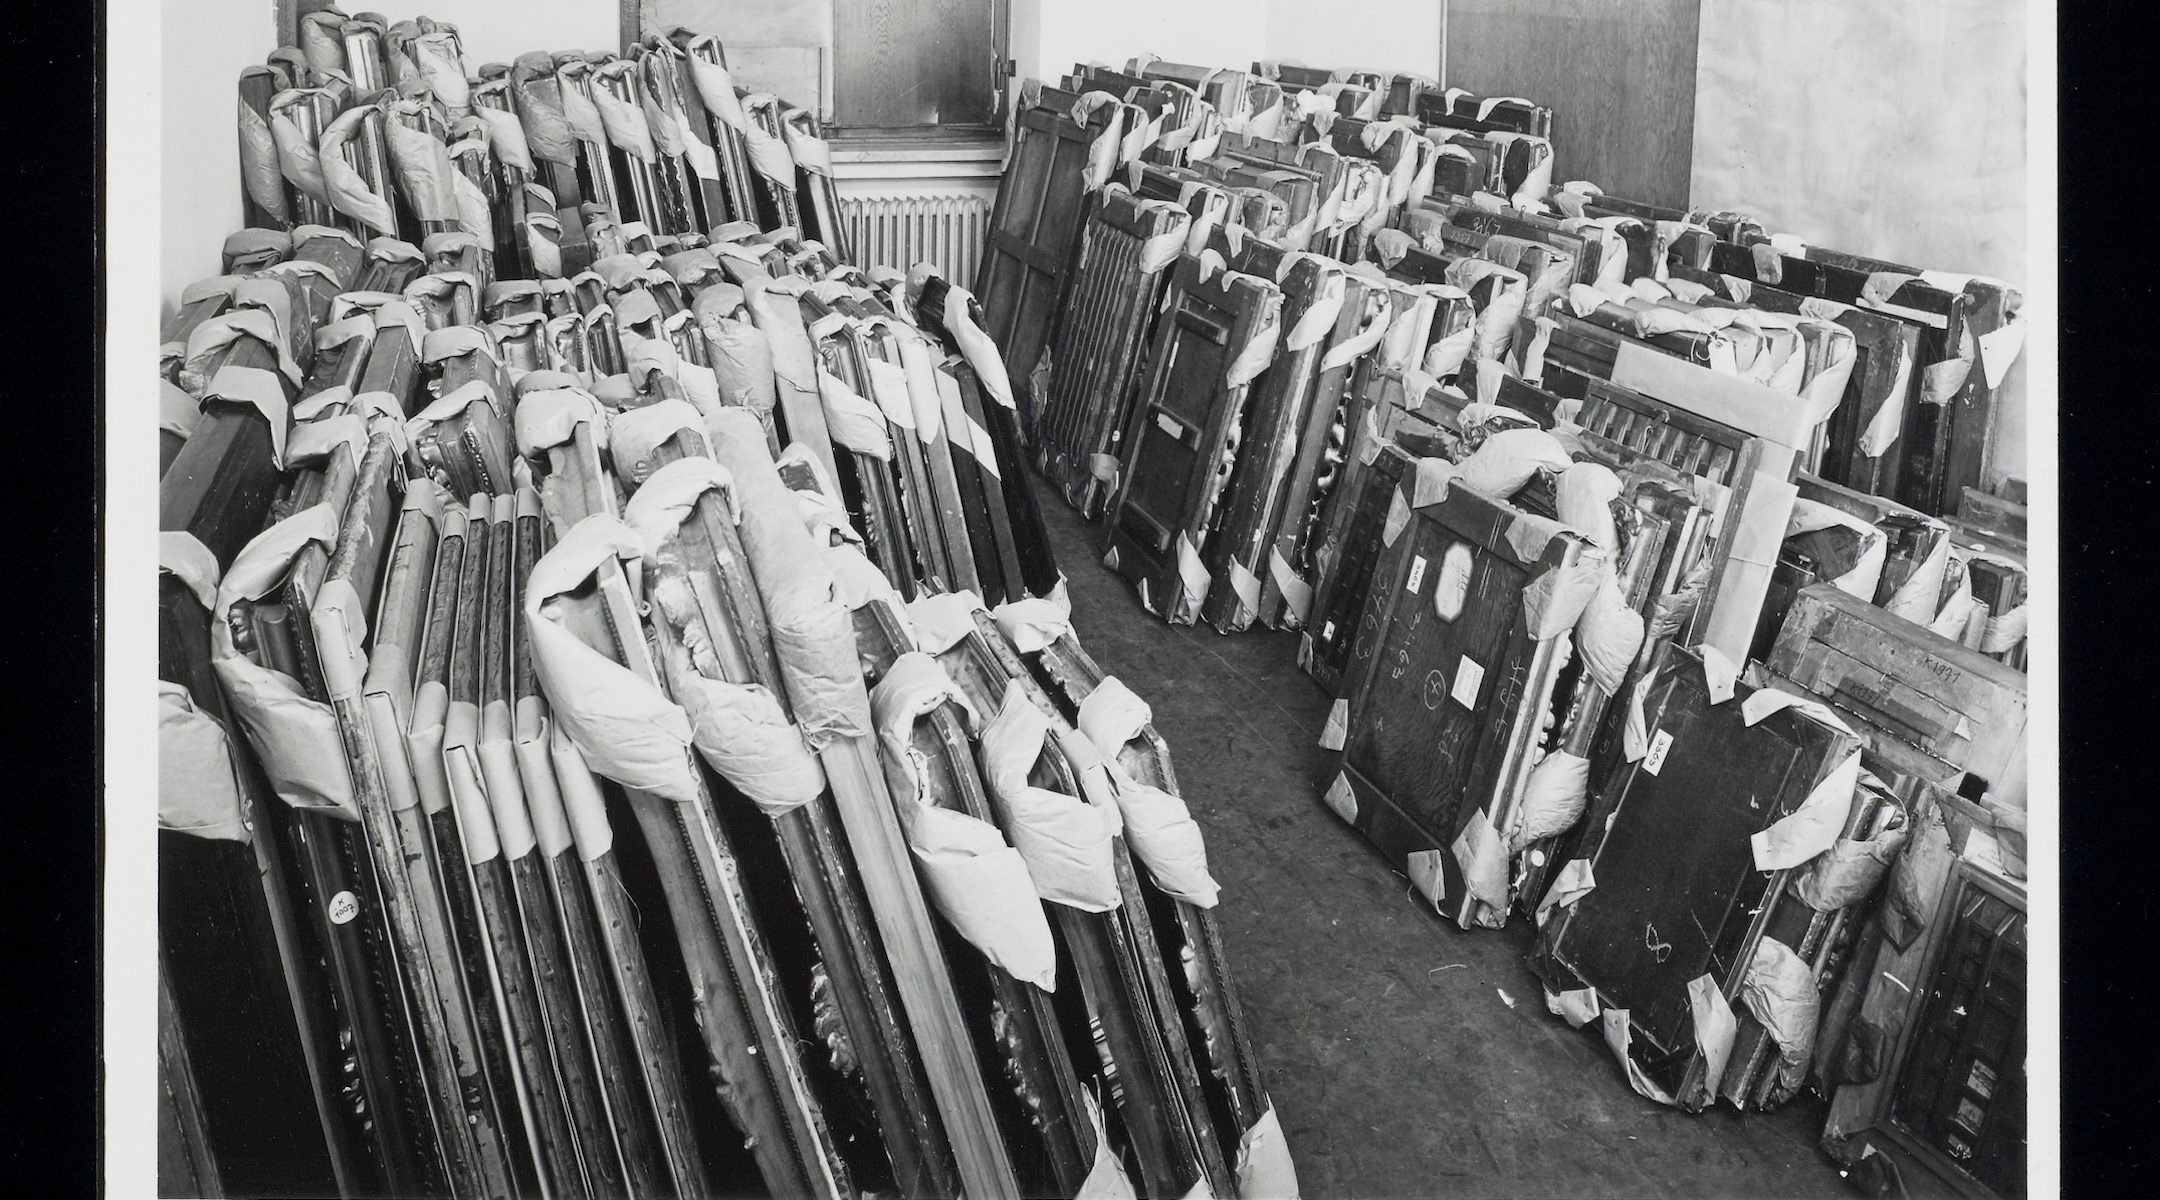 Johannes Felbermeyer, Artworks in storage at the Central Collecting Point, Munich, [ca. 1945-1949].